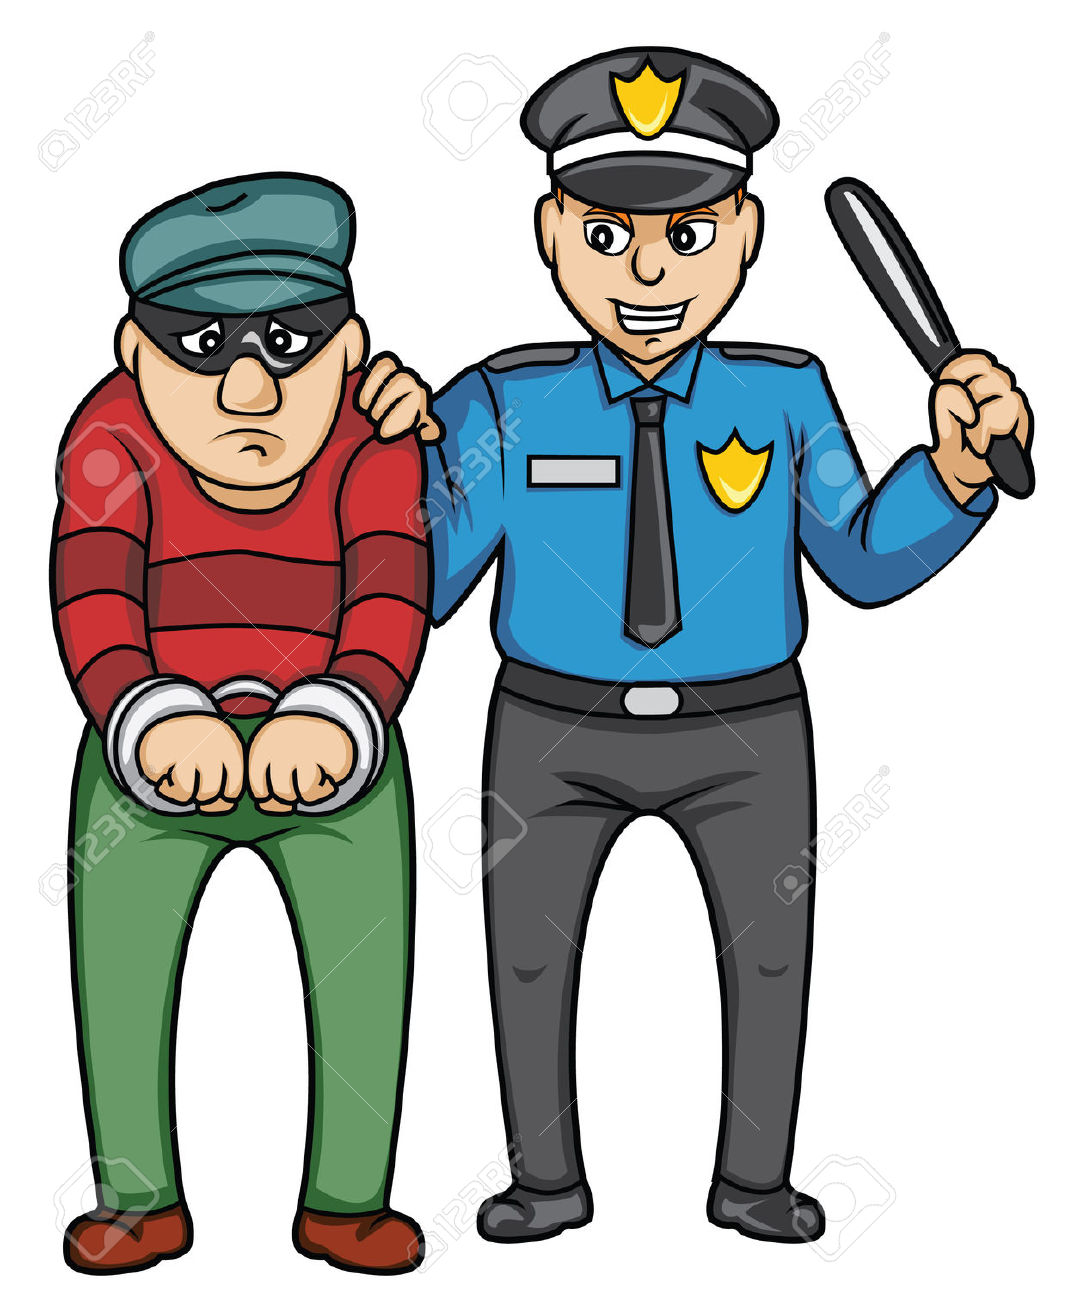 Police arrest clipart.